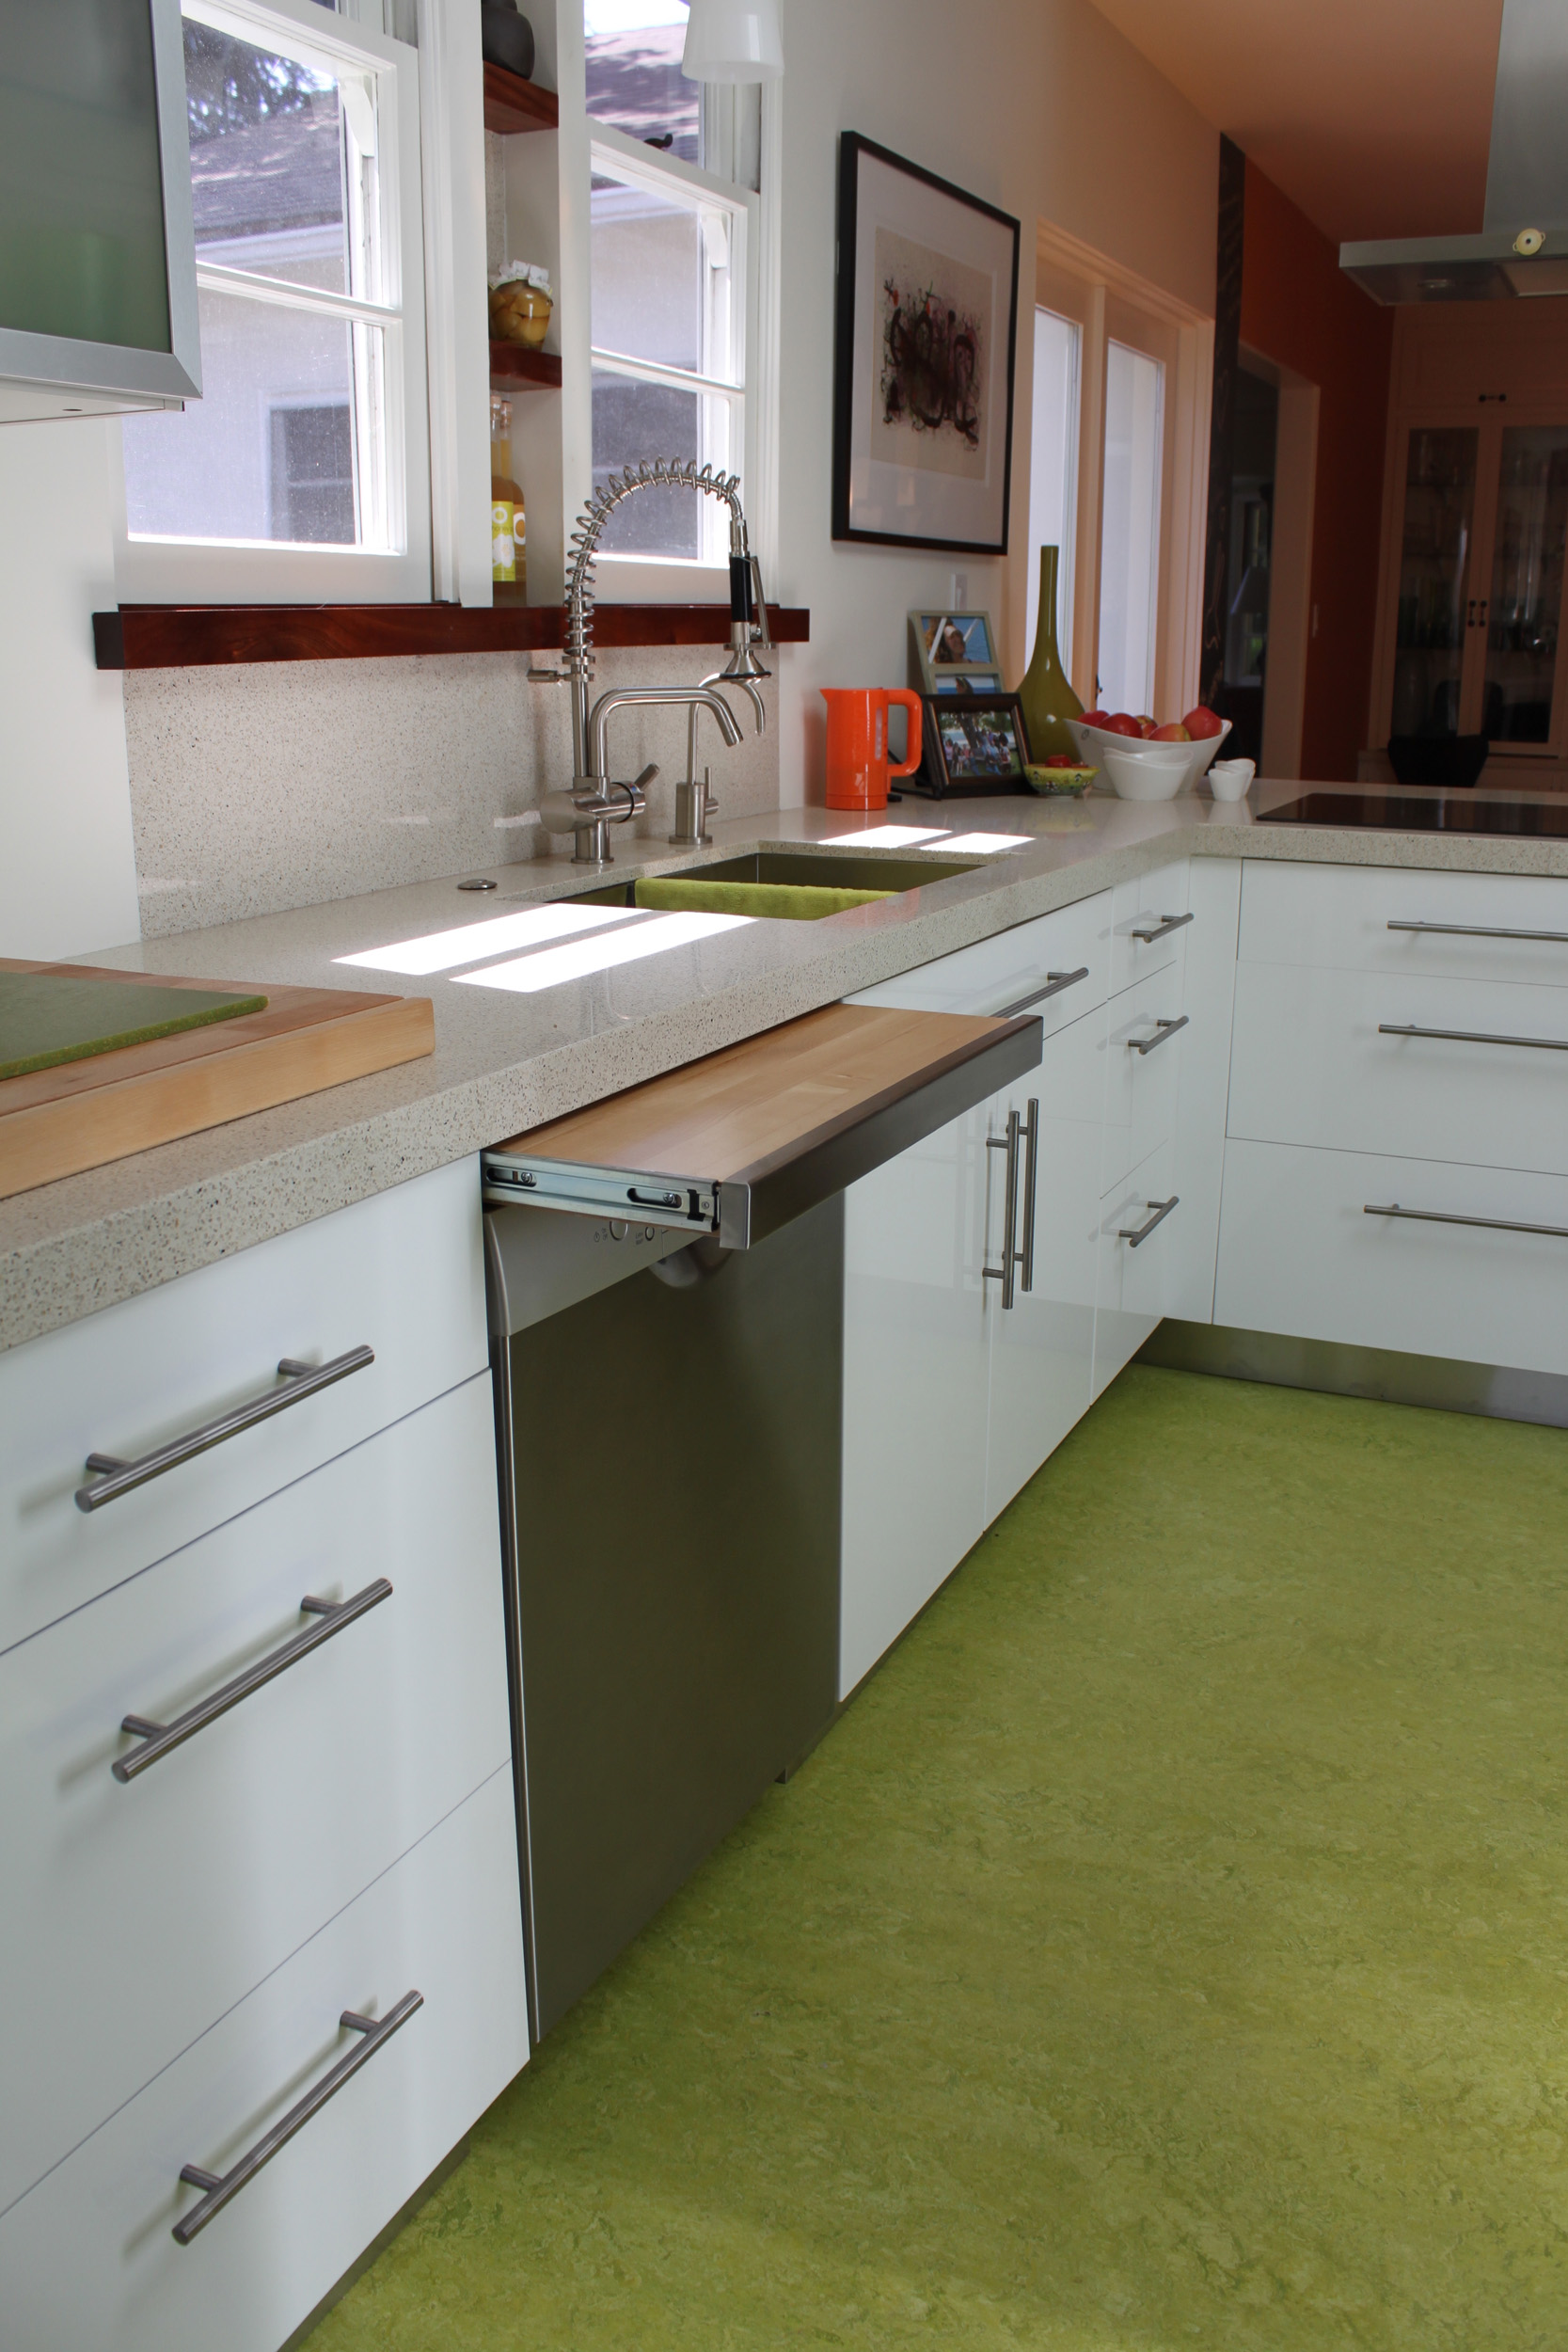 Concealed cutting board when closed appears to be part of the Dishwasher in this New Kitchen